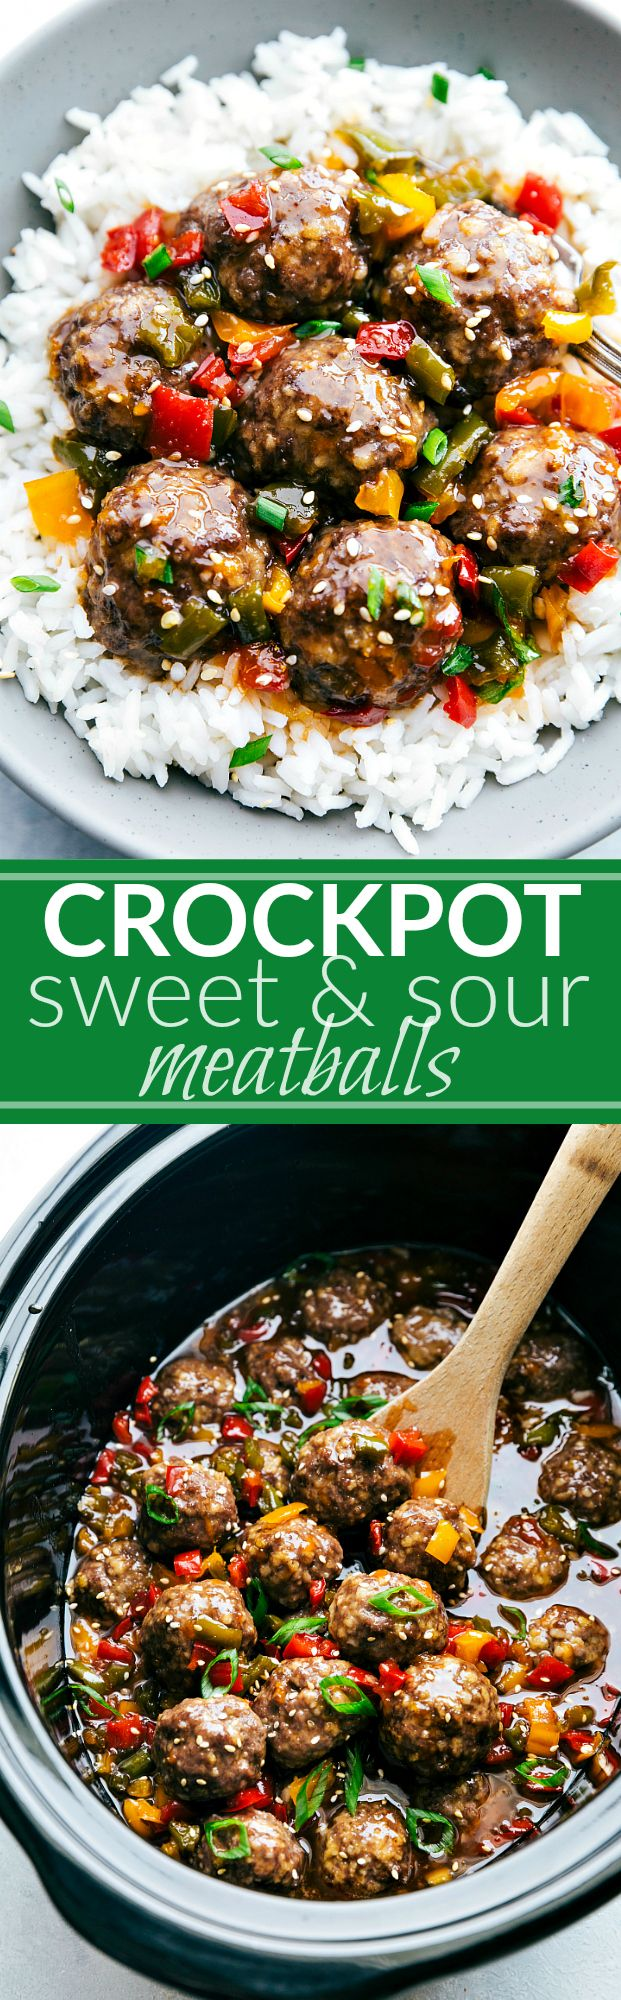 CROCKPOT or oven-made Asian Meatballs with the BEST sweet and sour sauce! Easy dinner recipe via chelseasmessyapron.com